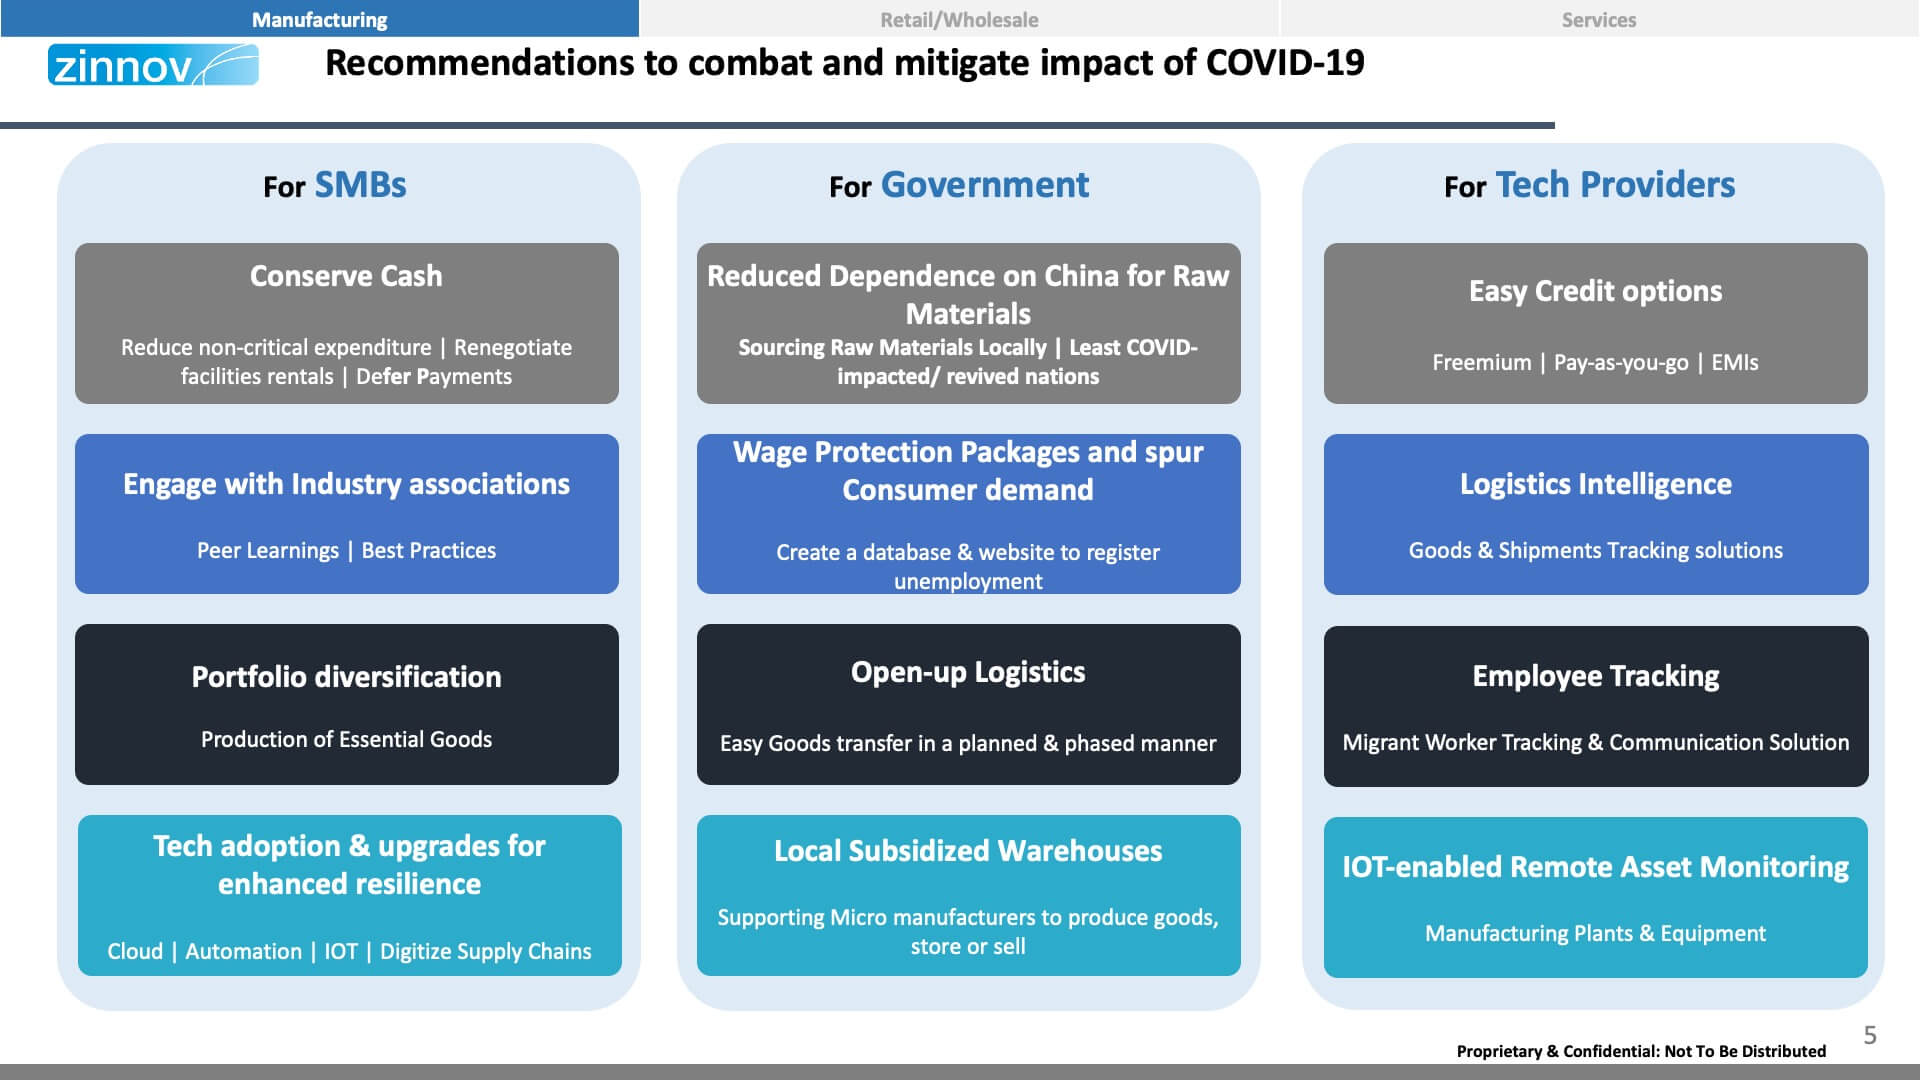 Challenges Faced By Small Medium Businesses During COVID-19 And The Road To Recovery